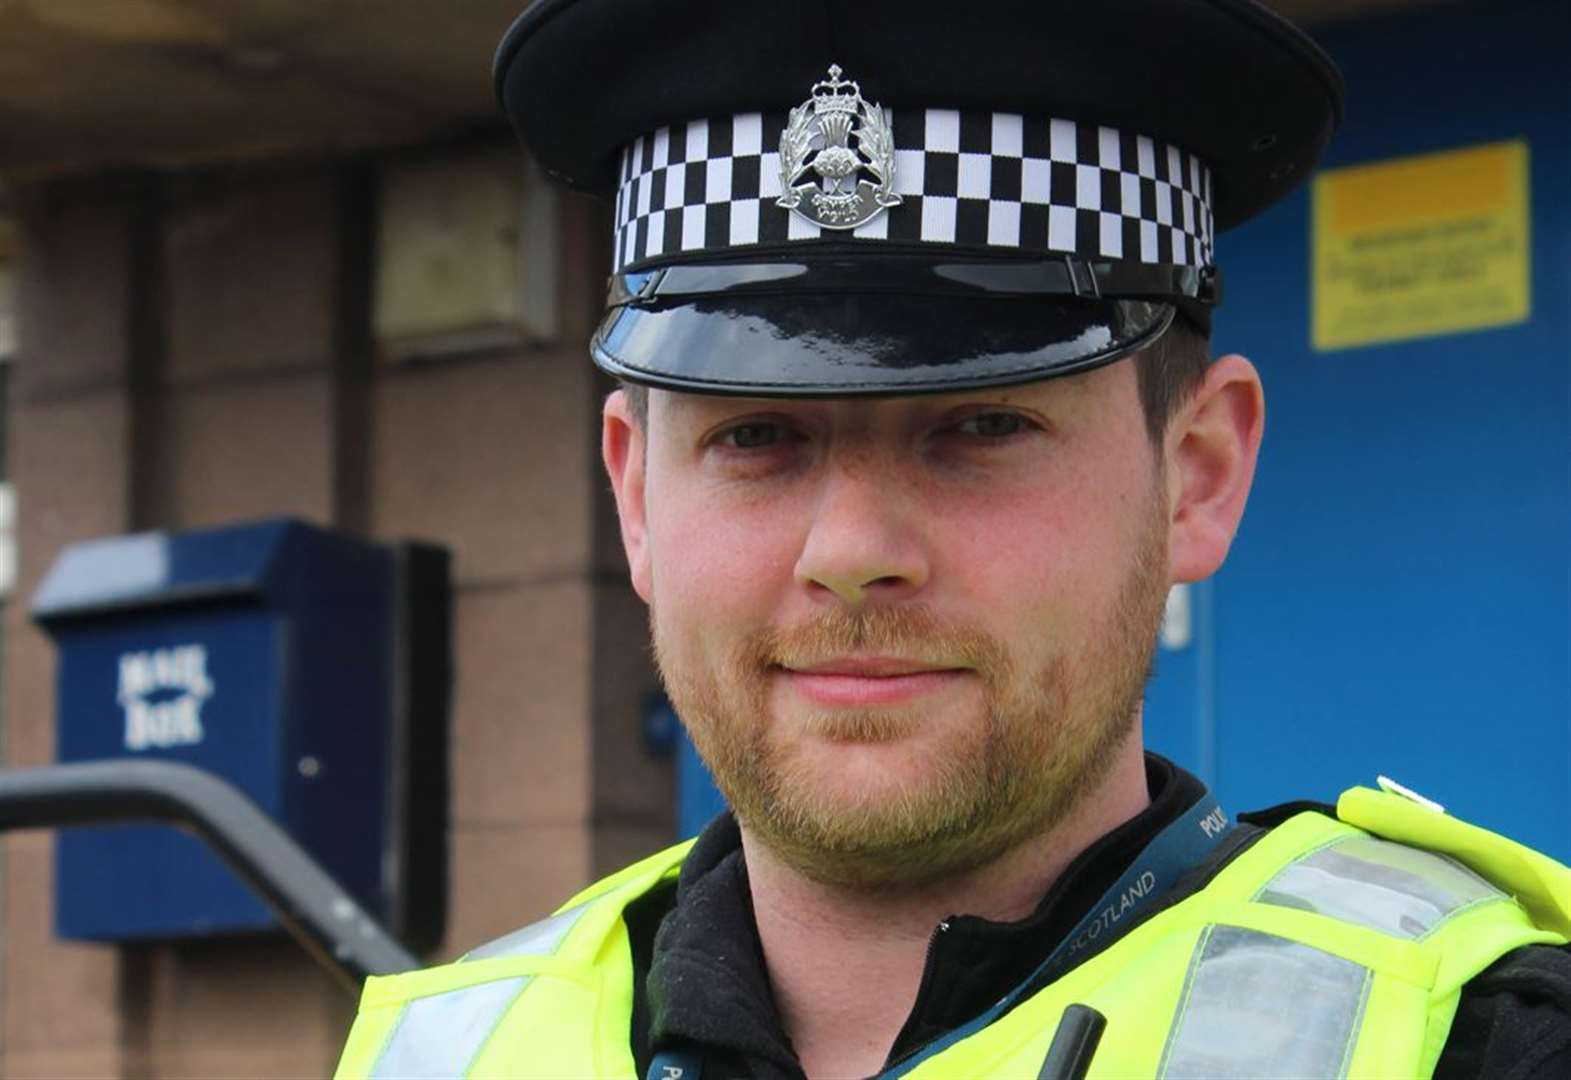 Turriff policing round up